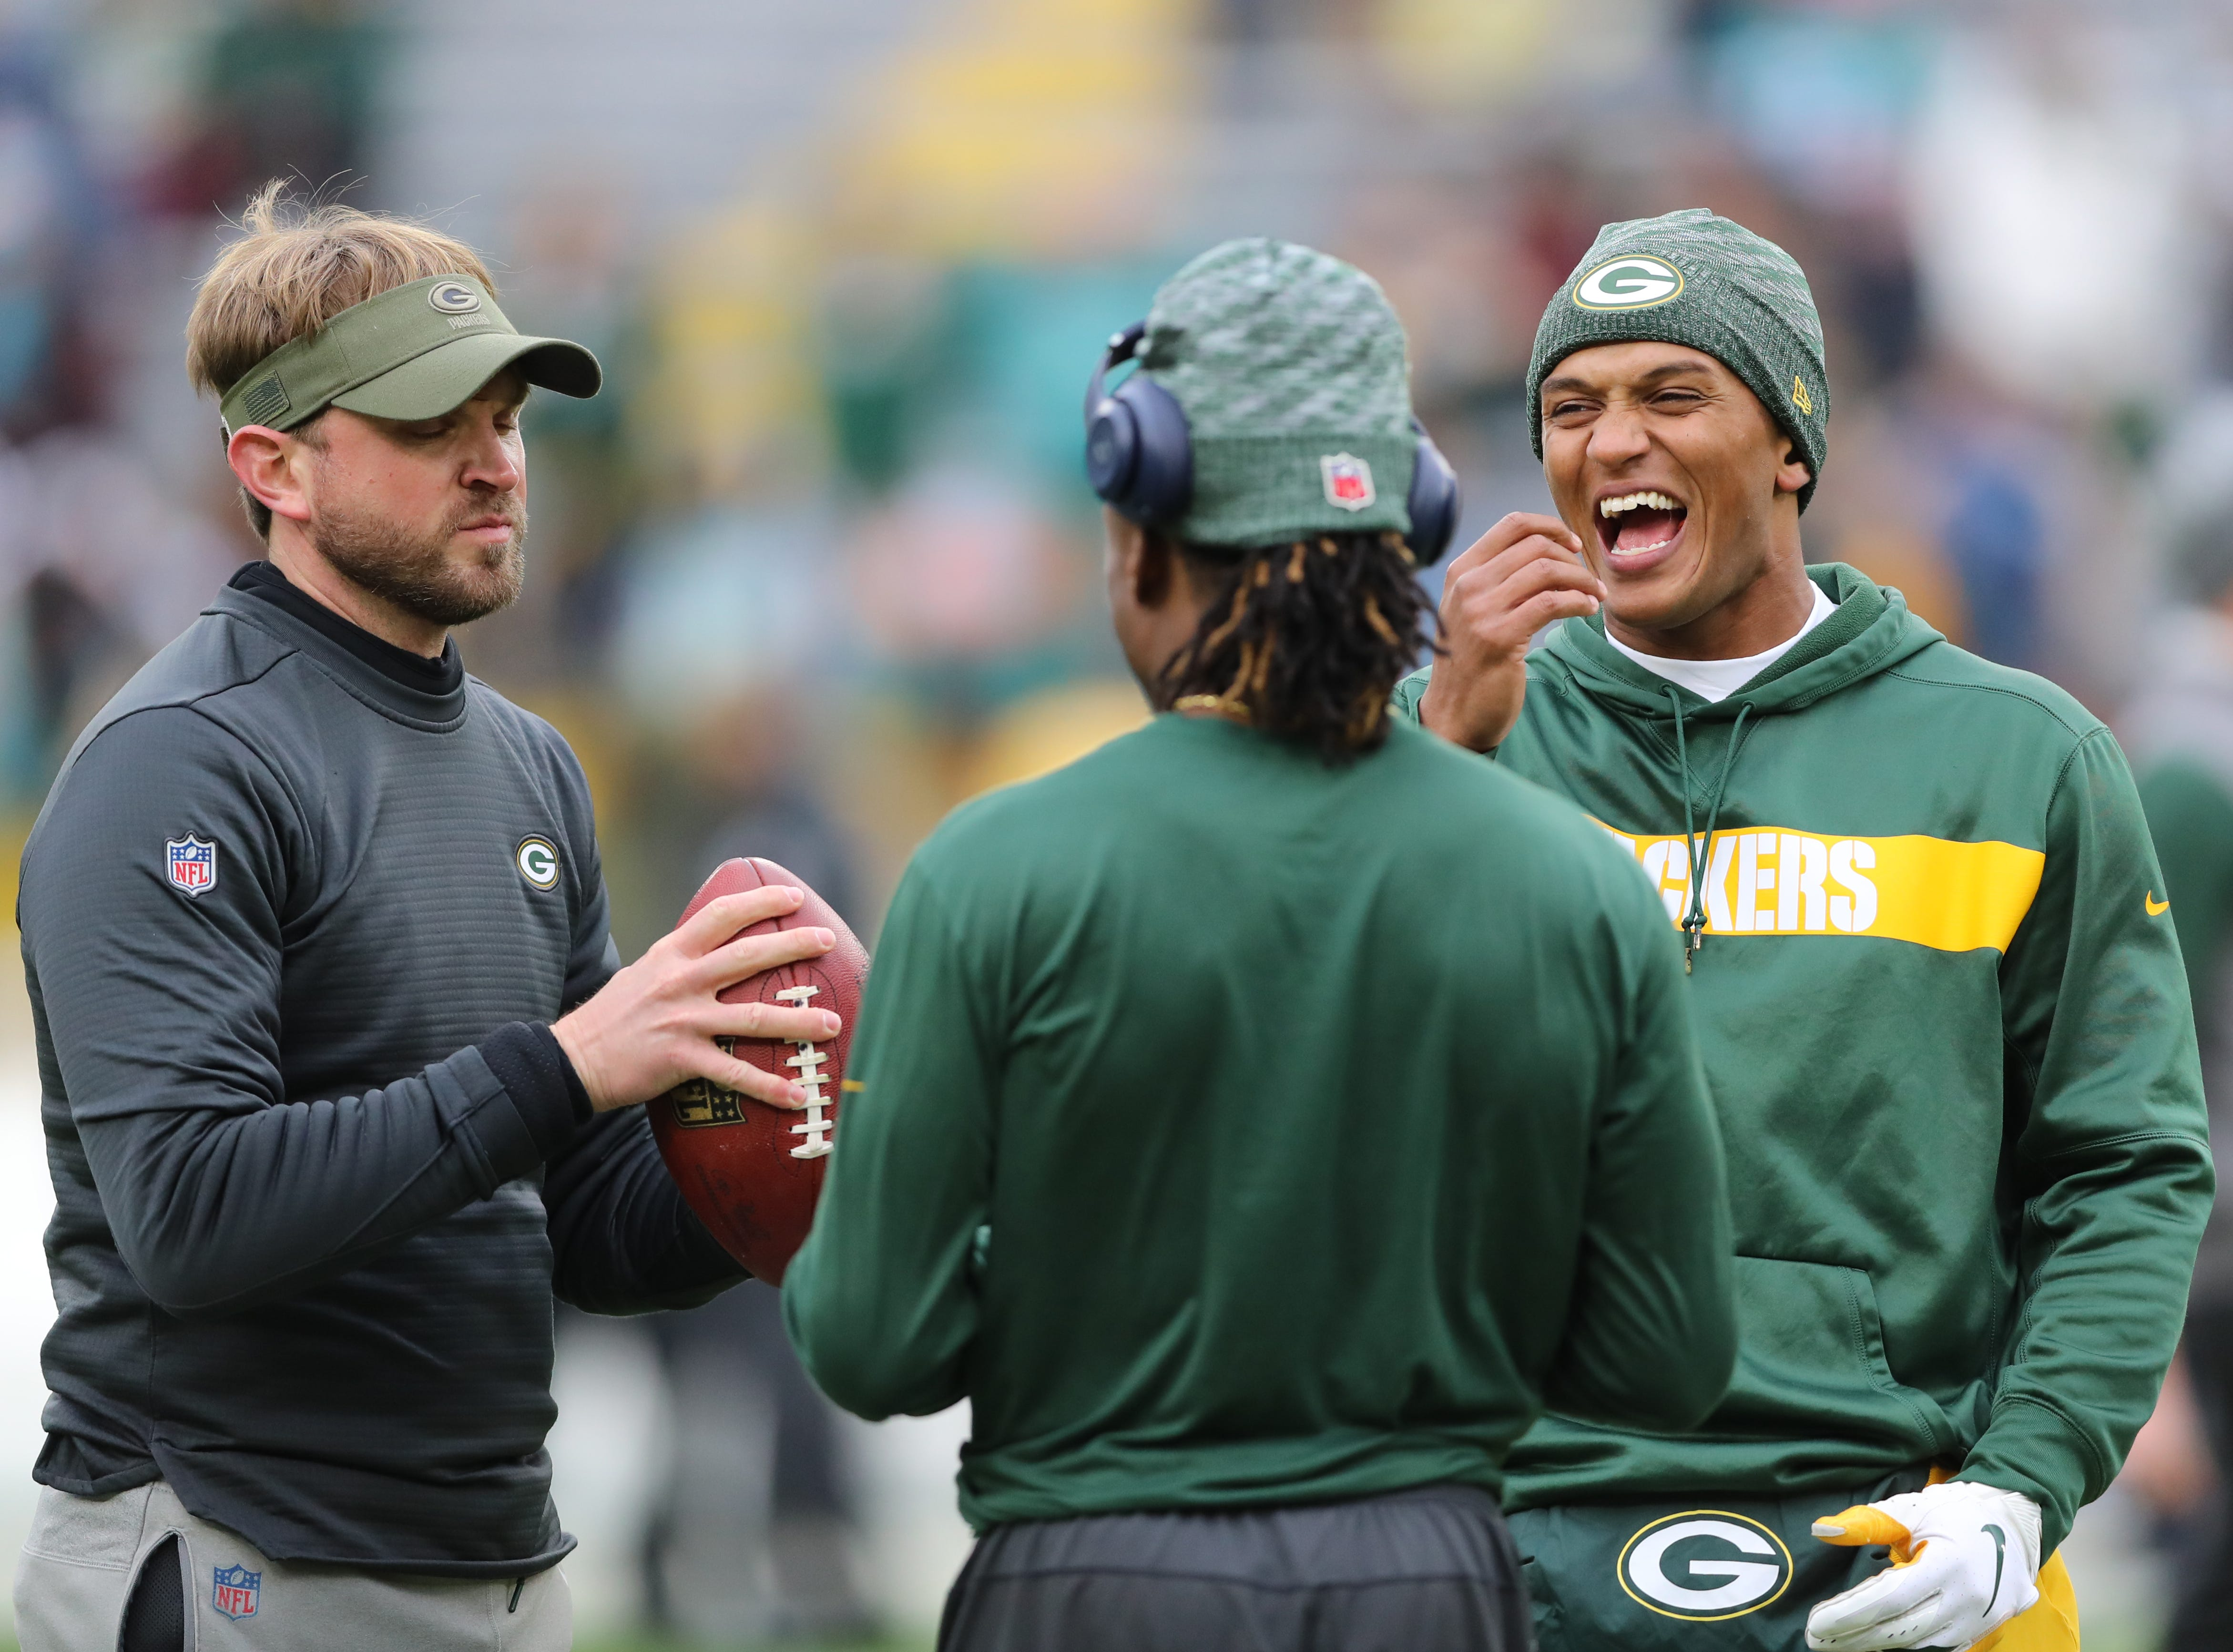 Packers coach David Riah with wide receiver Davante Adams (17) and quarterback DeShone Kizer (9) before the game against the Miami Dolphins at Lambeau Field Sunday, November 11, 2018 in Green Bay, Wis. Jim Matthews/USA TODAY NETWORK-Wis